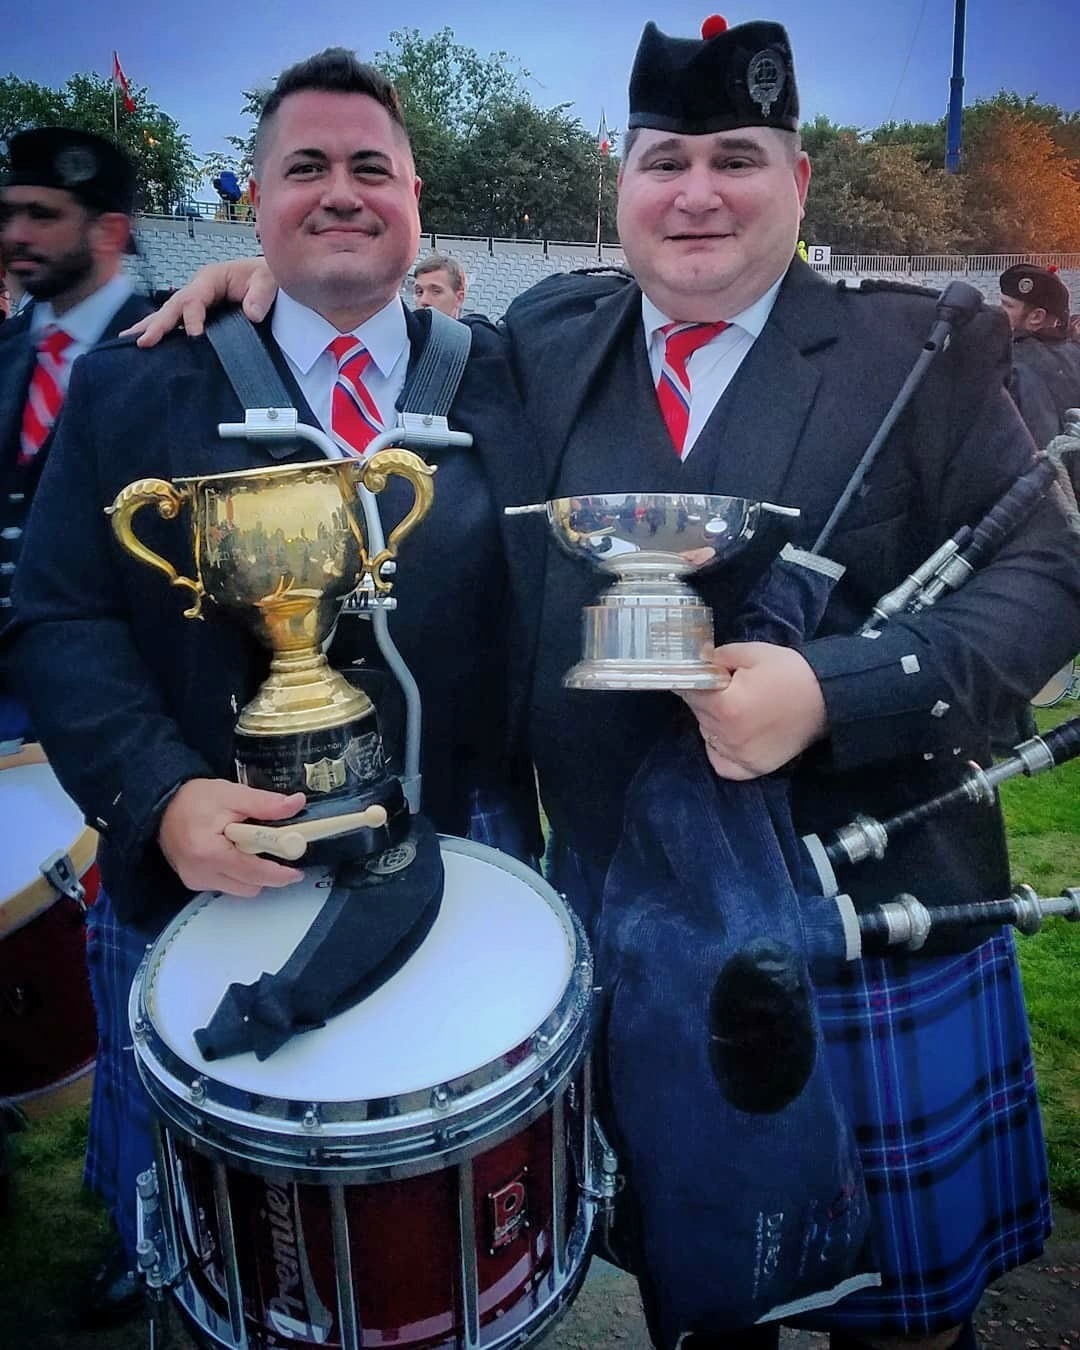 Will and Jim (right) Dillahey with their world championship trophies